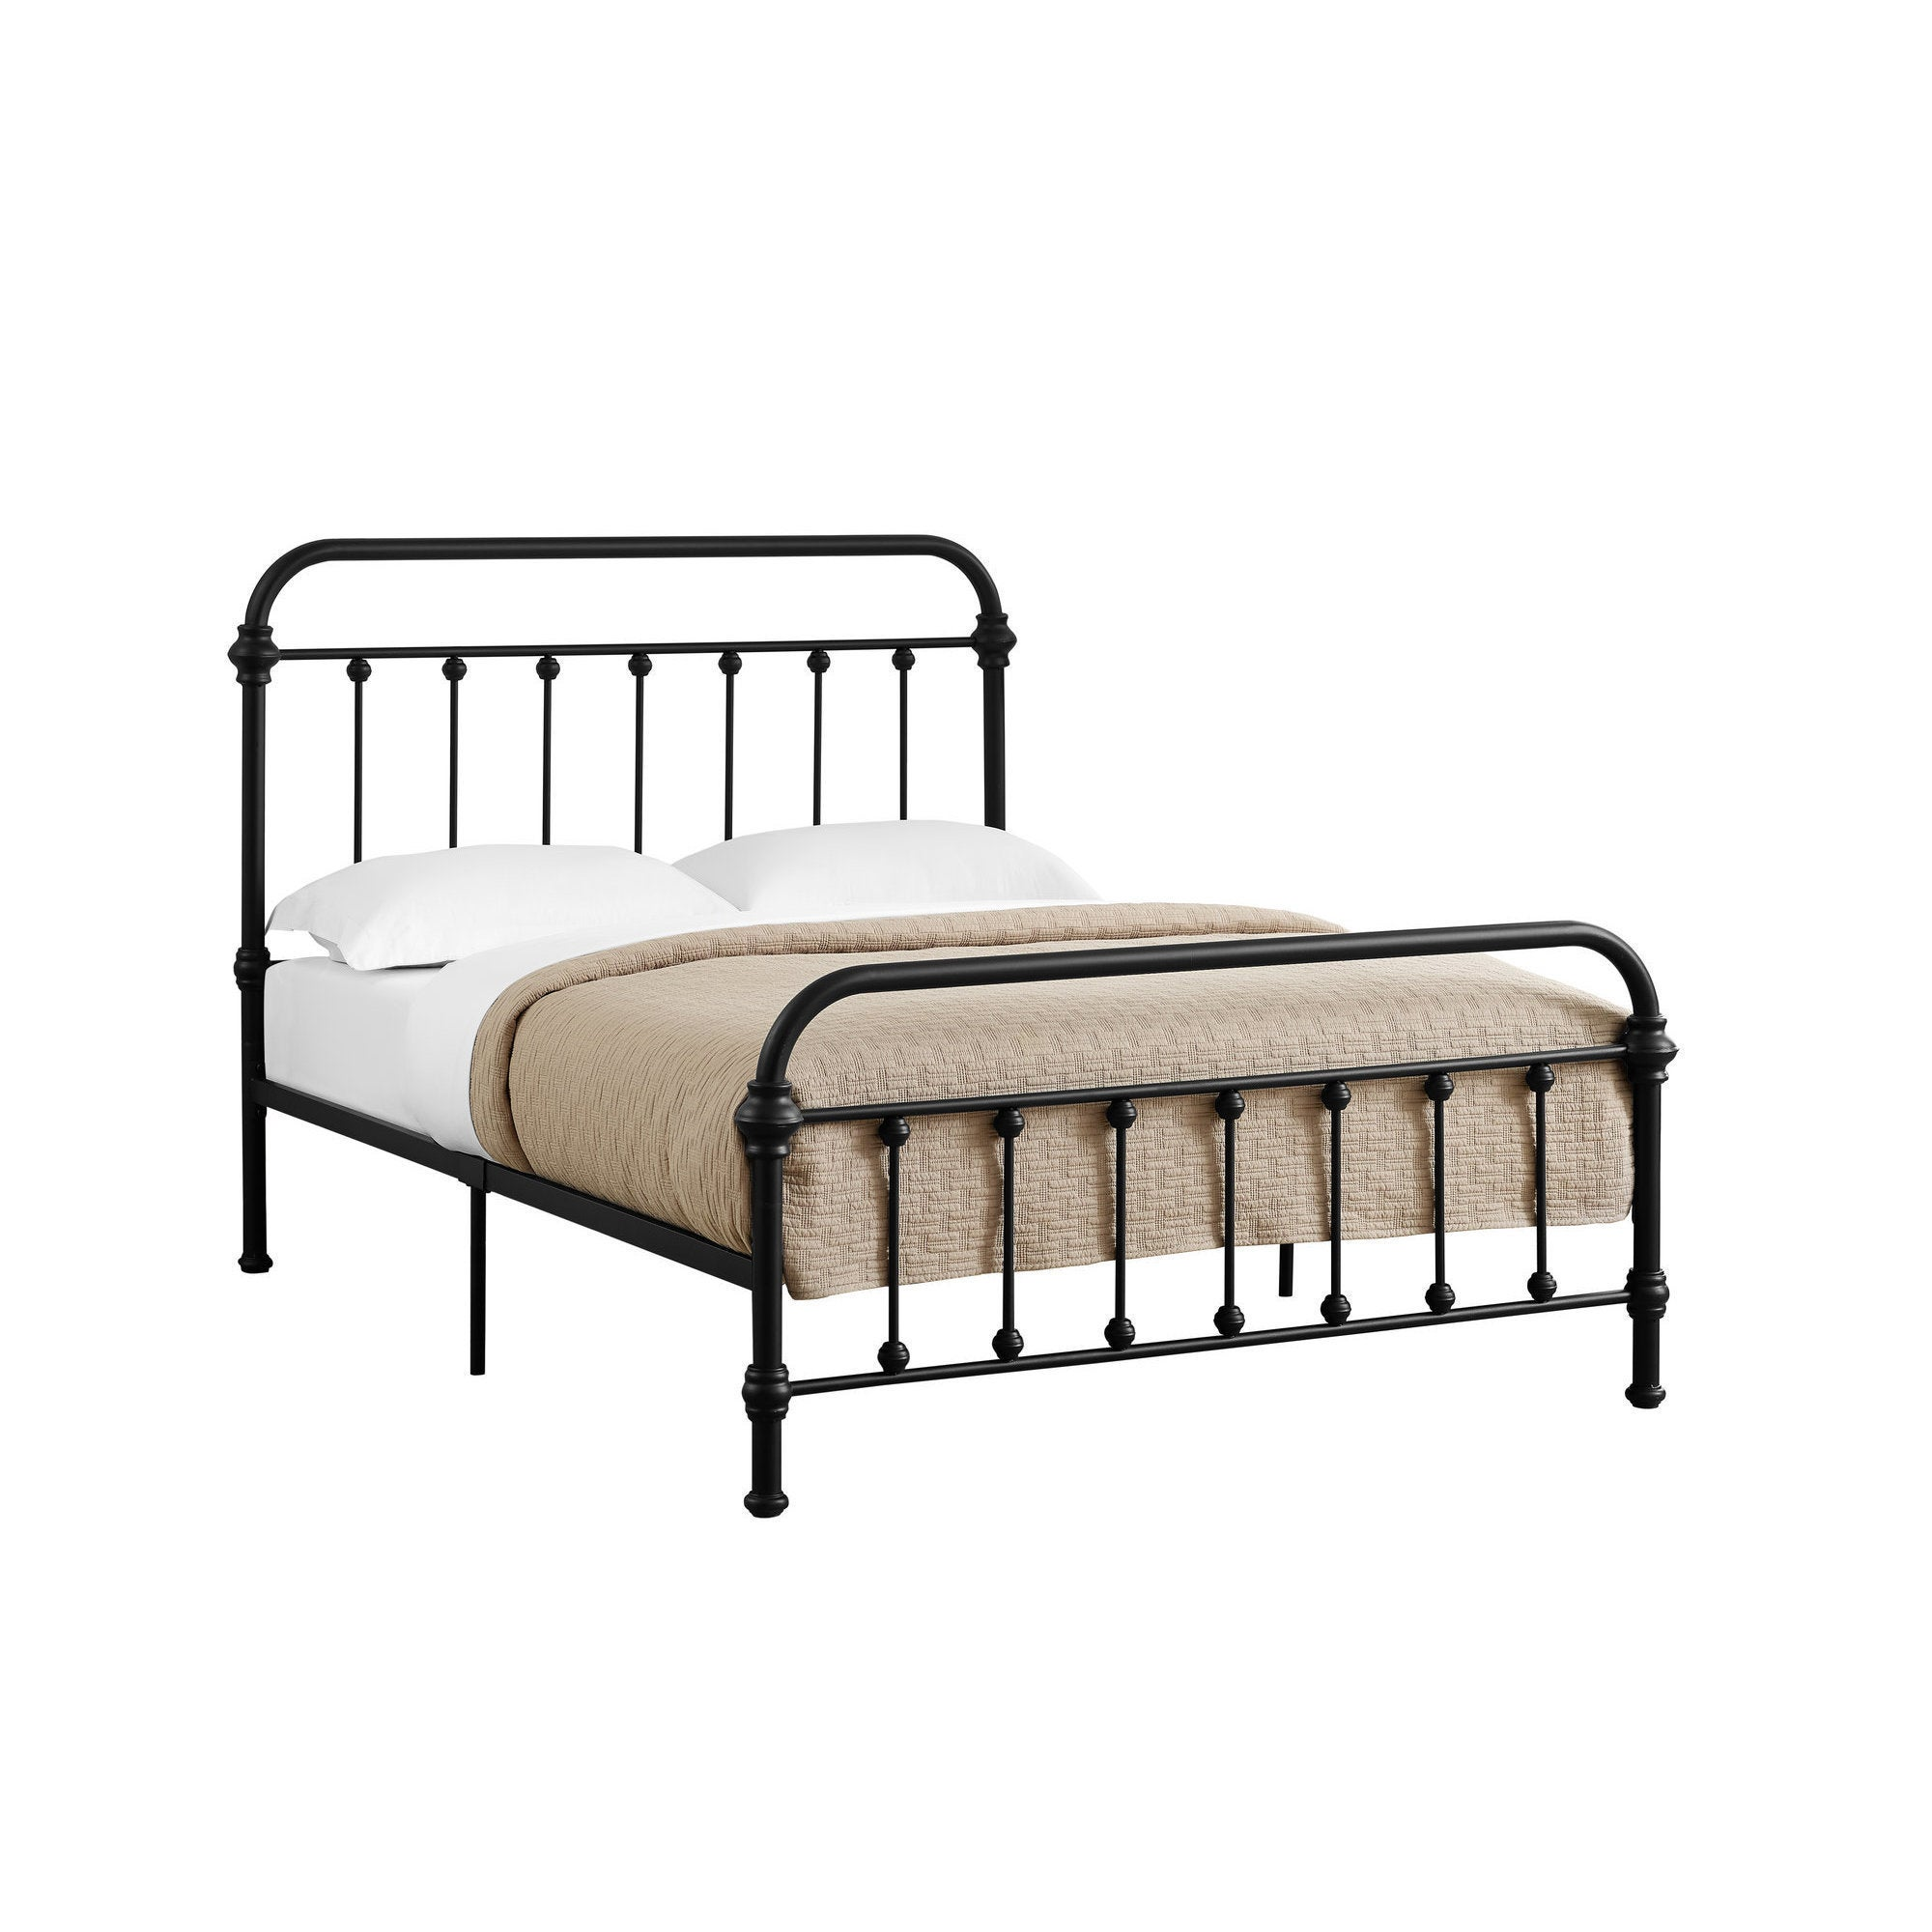 Shop Monarch Black Metal Full-size Bed Frame - Free Shipping Today ...